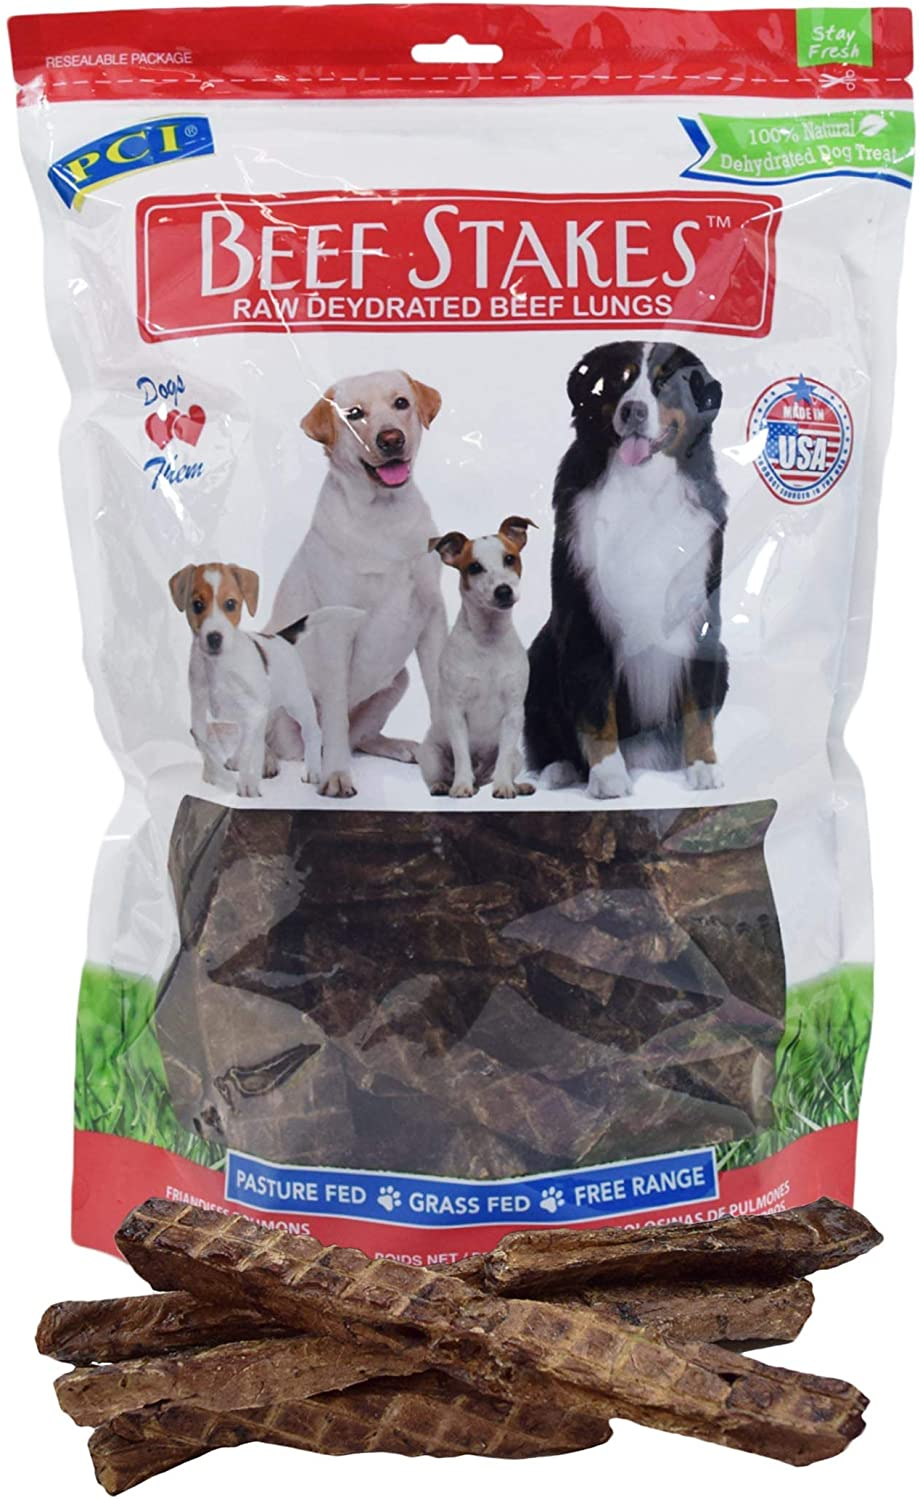 Pet Center, Inc. Beef Stakes Grain Free Dog Treats Protein Hearty Beef Taste Slowly Dehydrated,8 Ounces